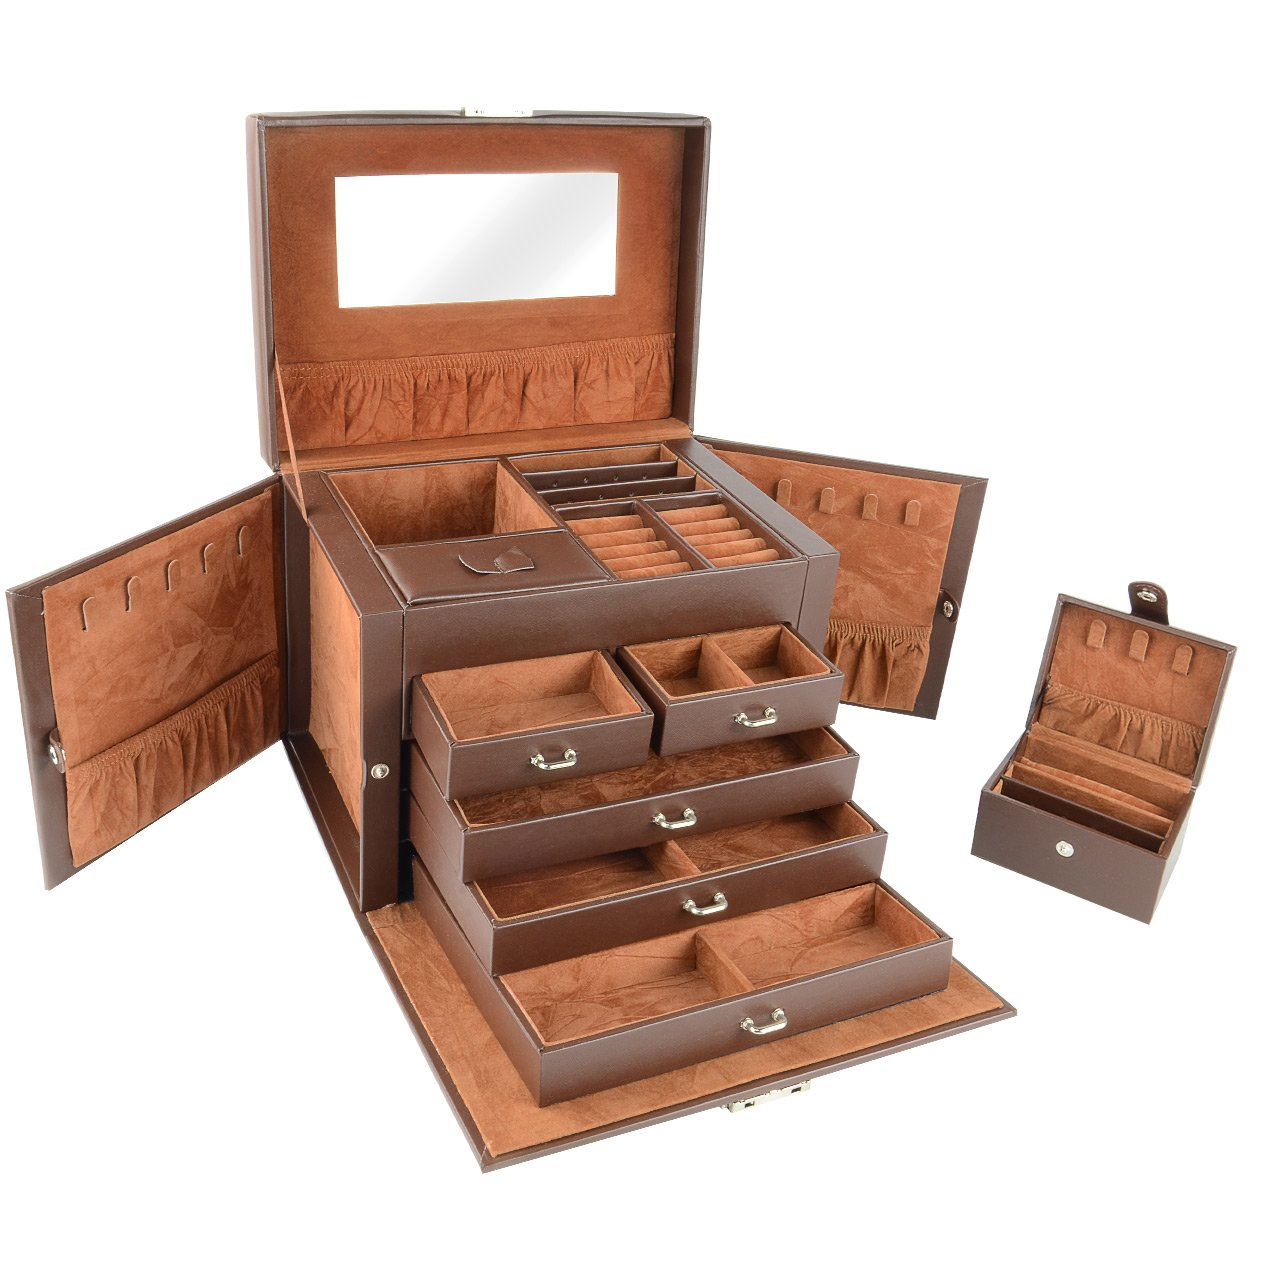 SortWise Lockable Jewelry Box Storage 20 Compartments Large Capacity Multi-Layer Leather Showcase Organizer Case with Travel CASE/Mirror/ 5 Drawer/Key for Studs Earrings Rings Necklace (Brown) SaveOnMany